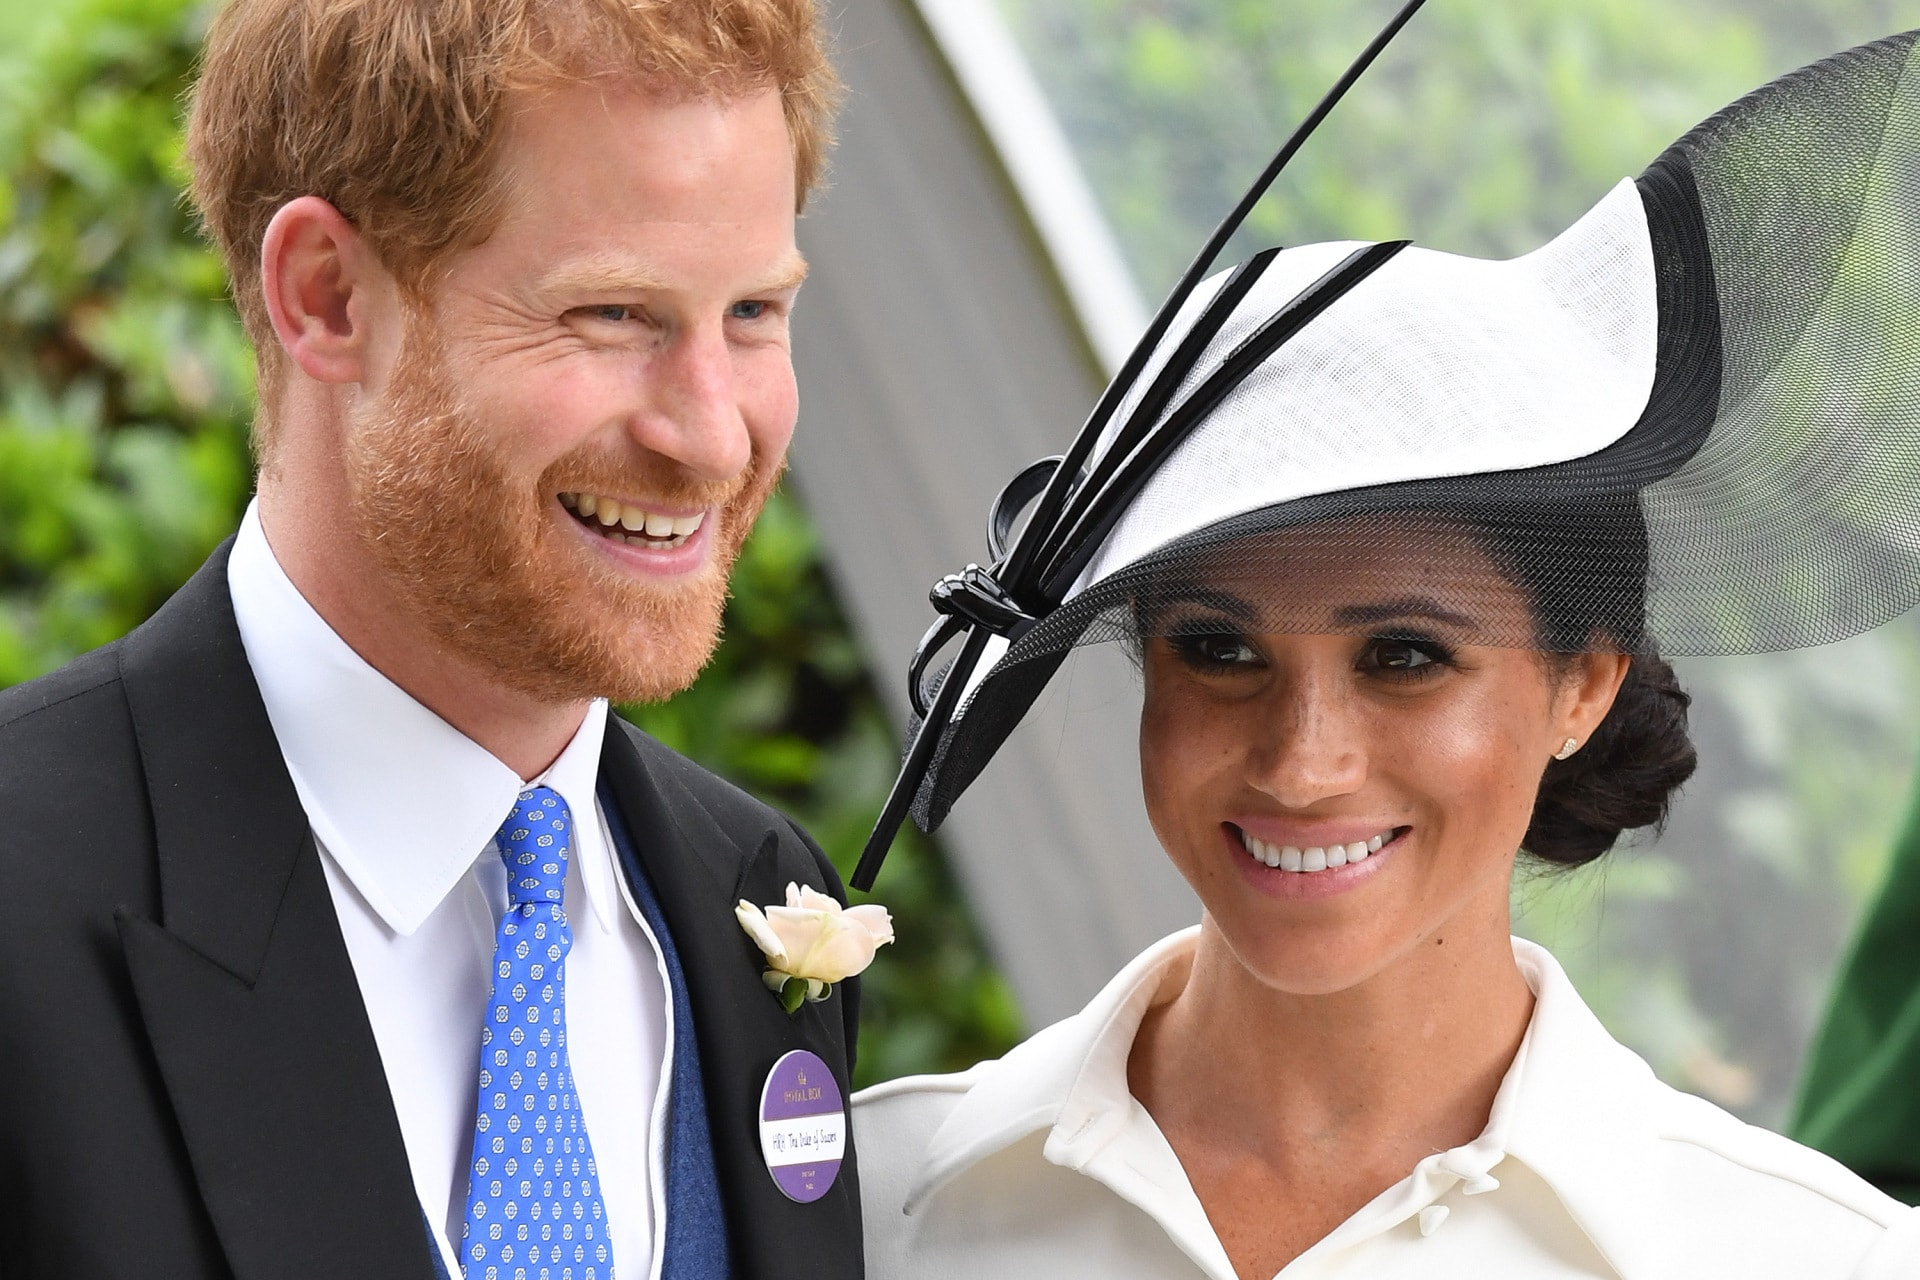 Meghan Markle's devotion to Givenchy reminds us of Kate Middleton's relationship with Alexander McQueen